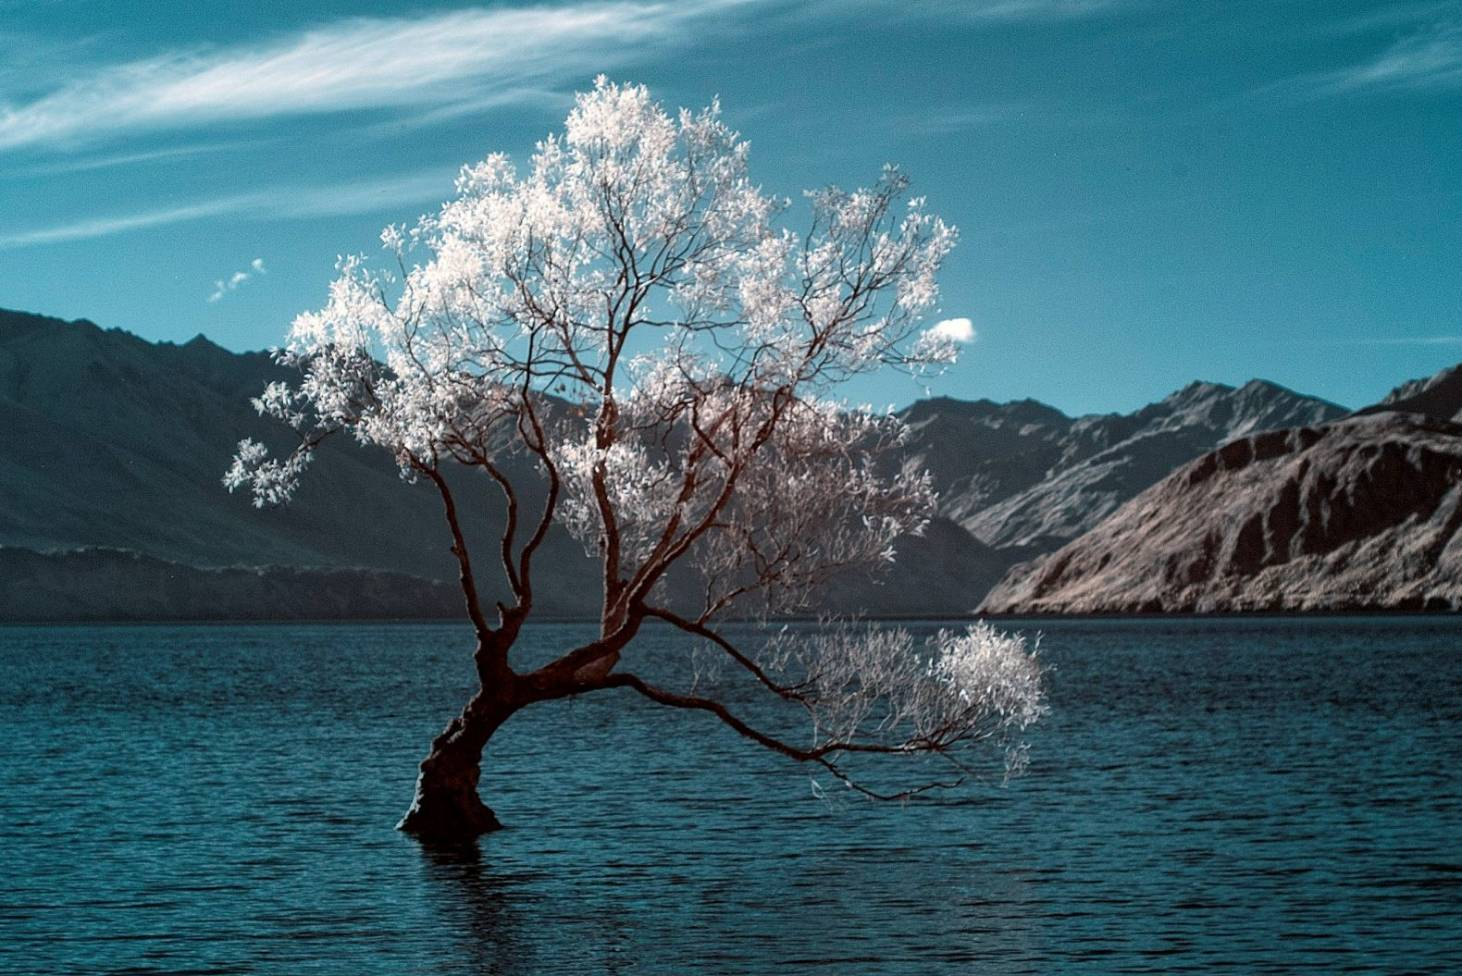 That Wanaka Tree - the little fence post determined to live | Stuff.co.nz